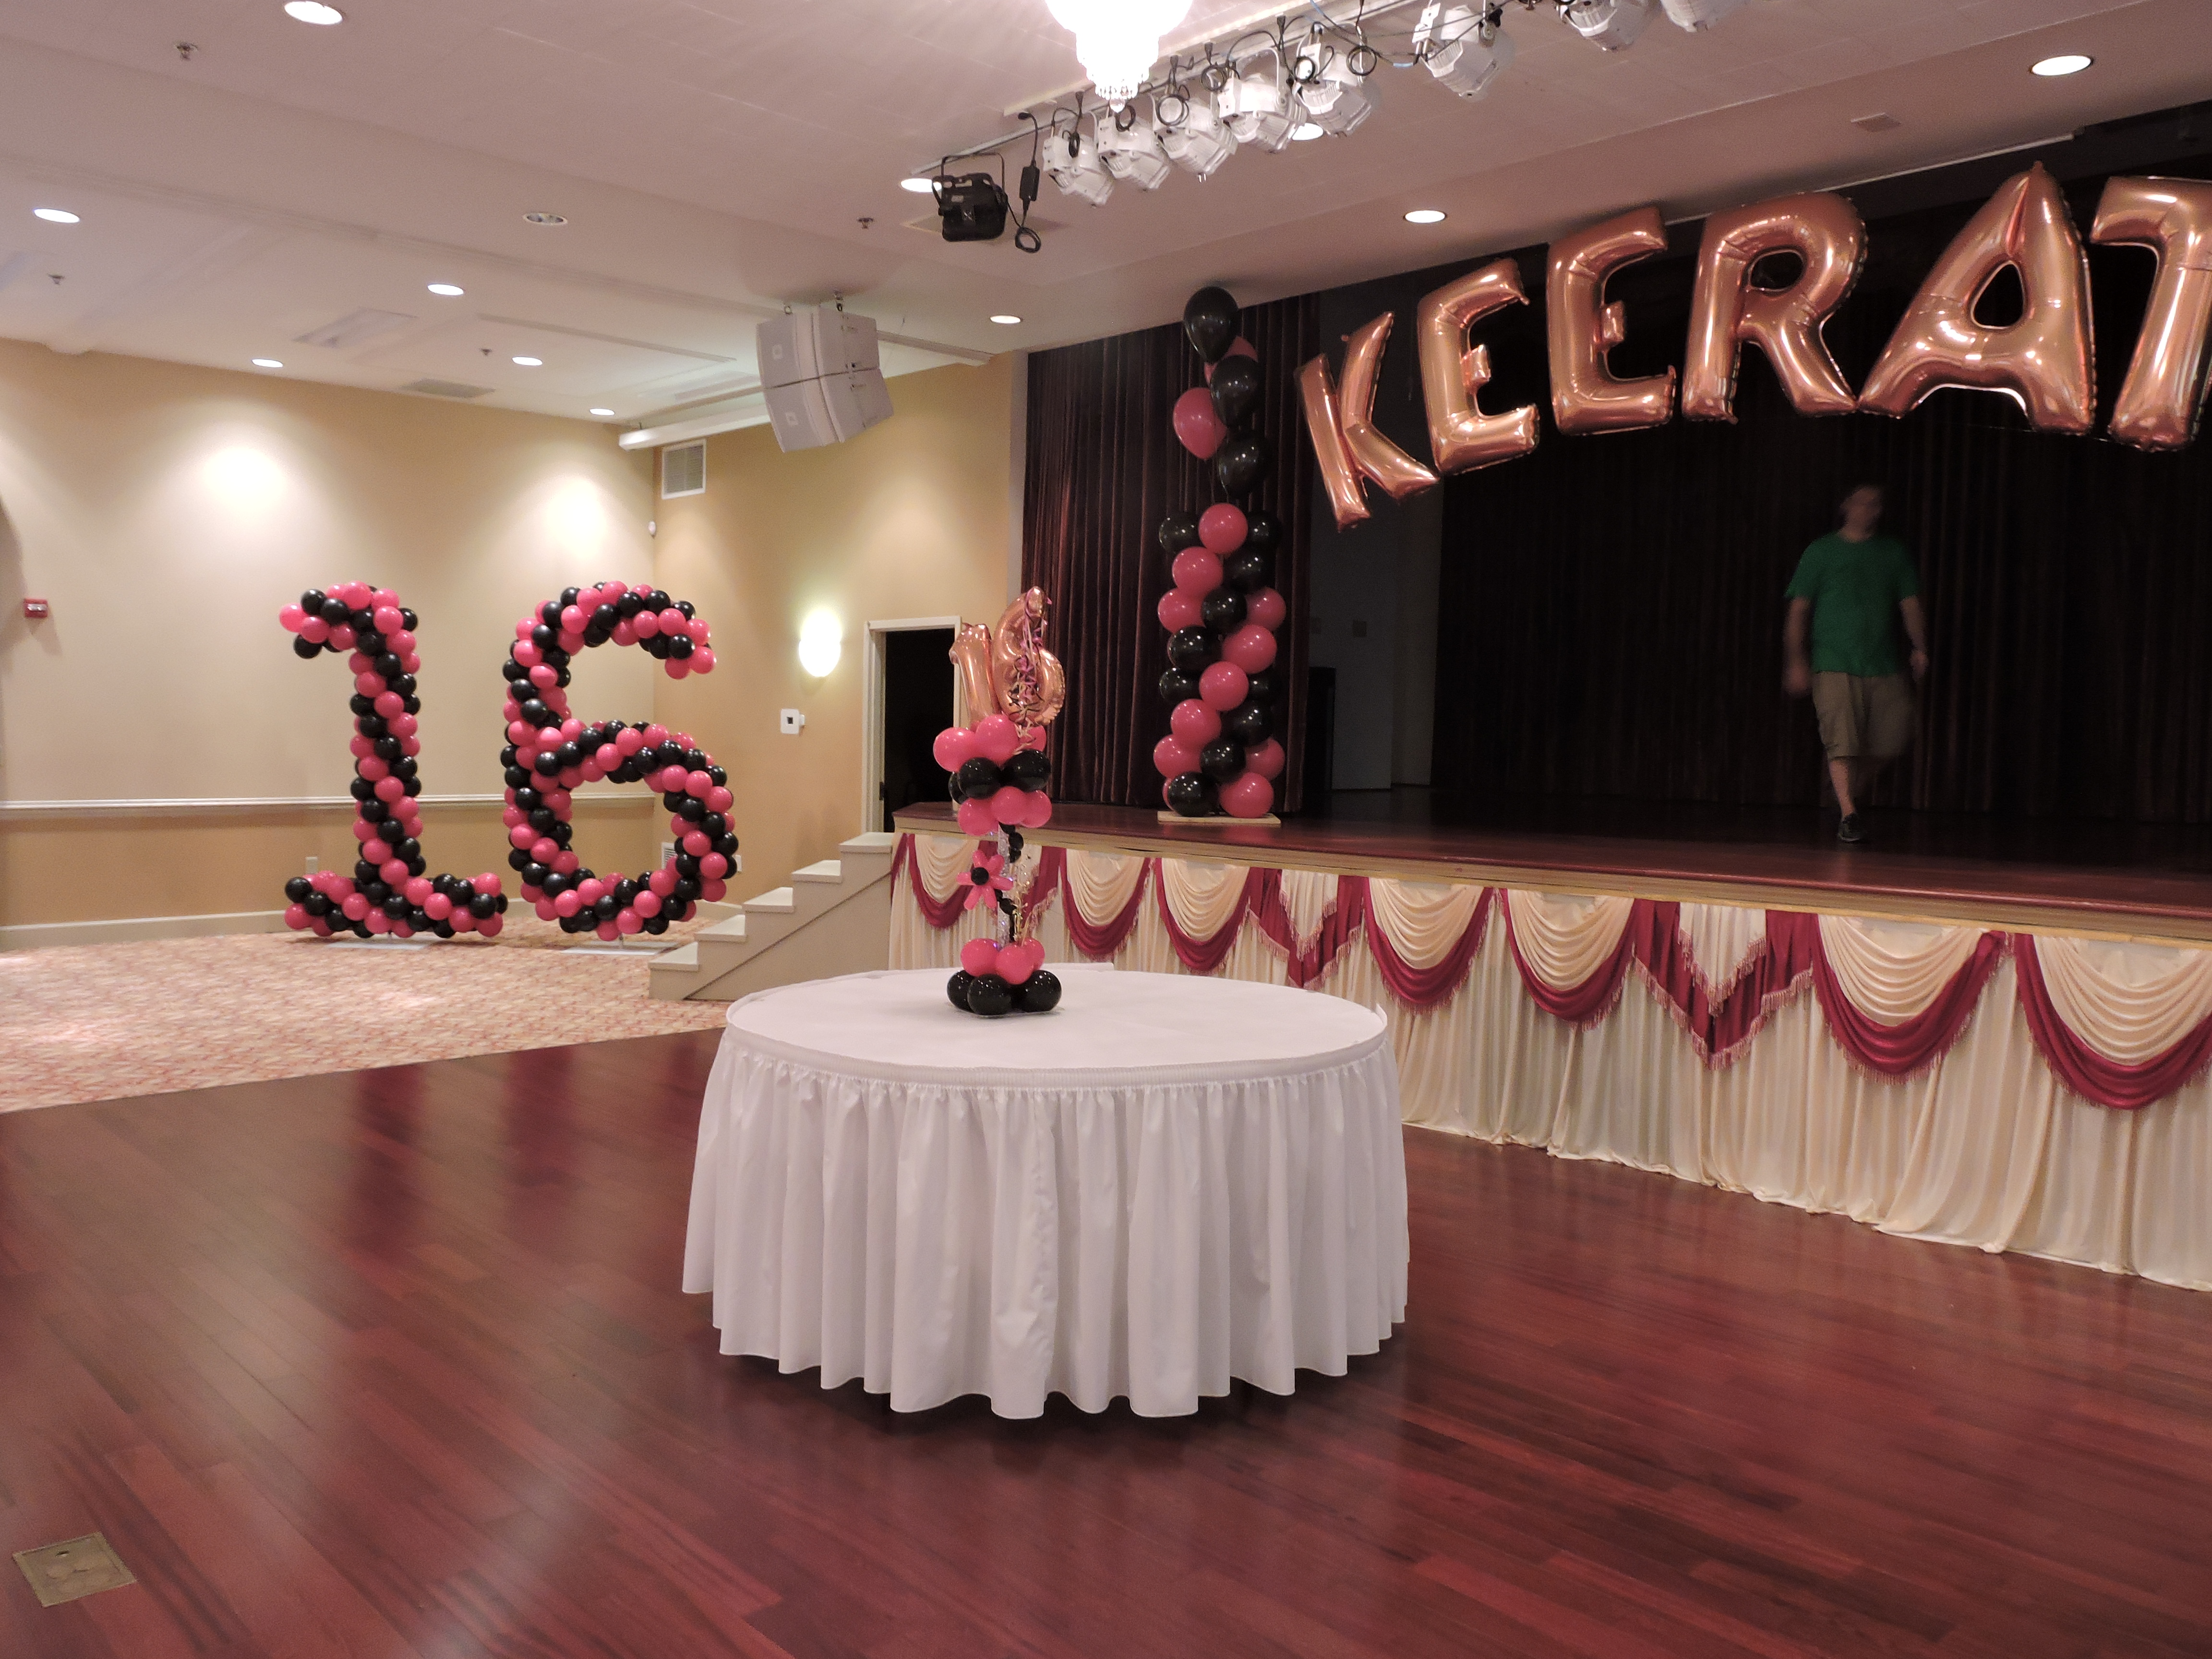 Sweet sixteen decorations and also sweet 16 party ideas for girl and also 16th birthday celebration ideas and also sweet decorations